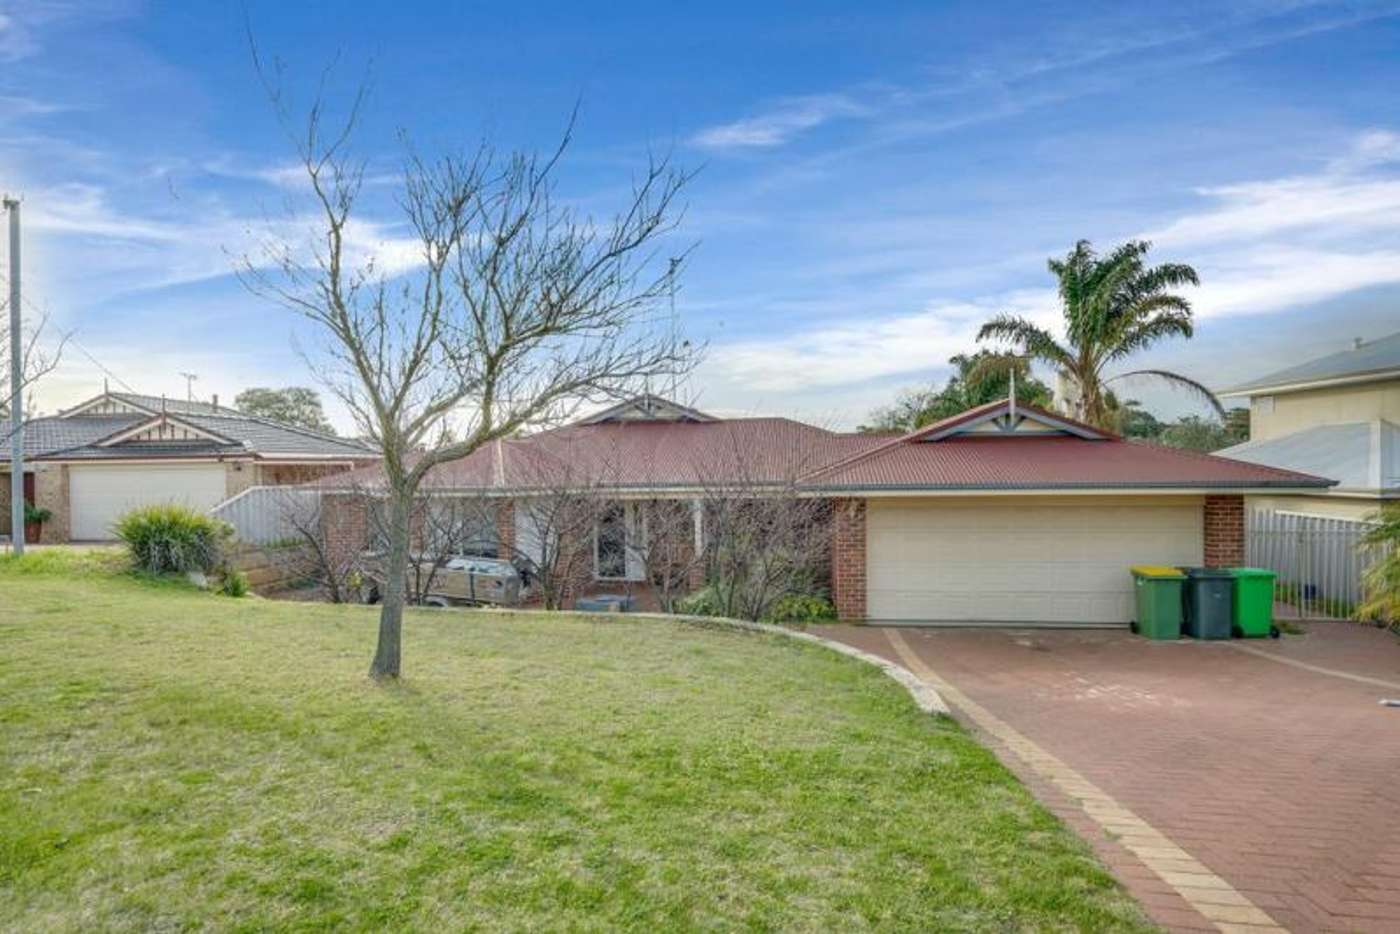 Main view of Homely house listing, 15 Williams Way, Australind WA 6233